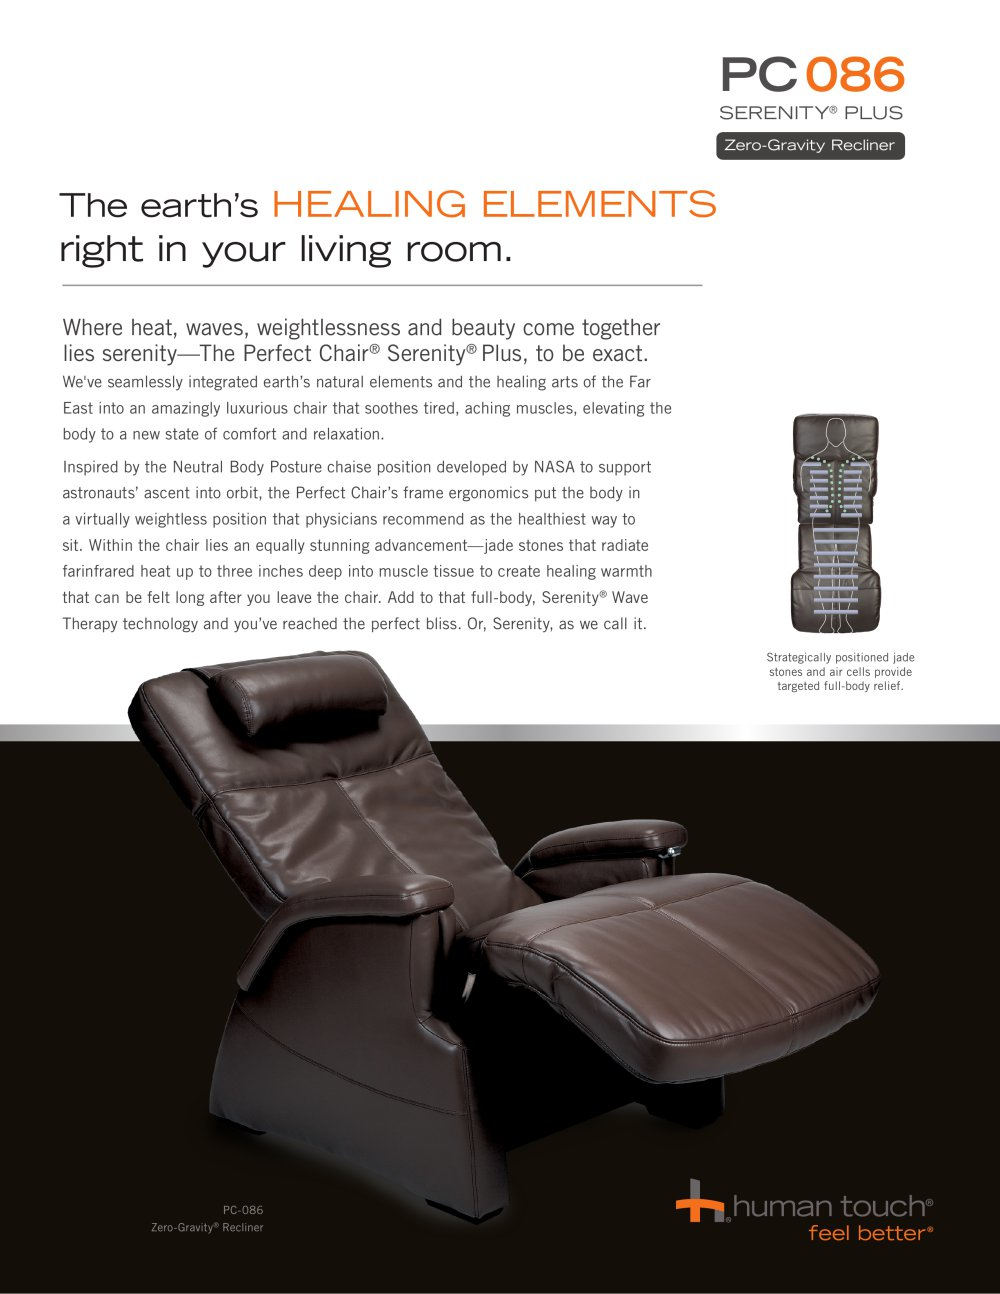 PC 086 Perfect Chair® Serenity® Plus Recliner   1 / 2 Pages